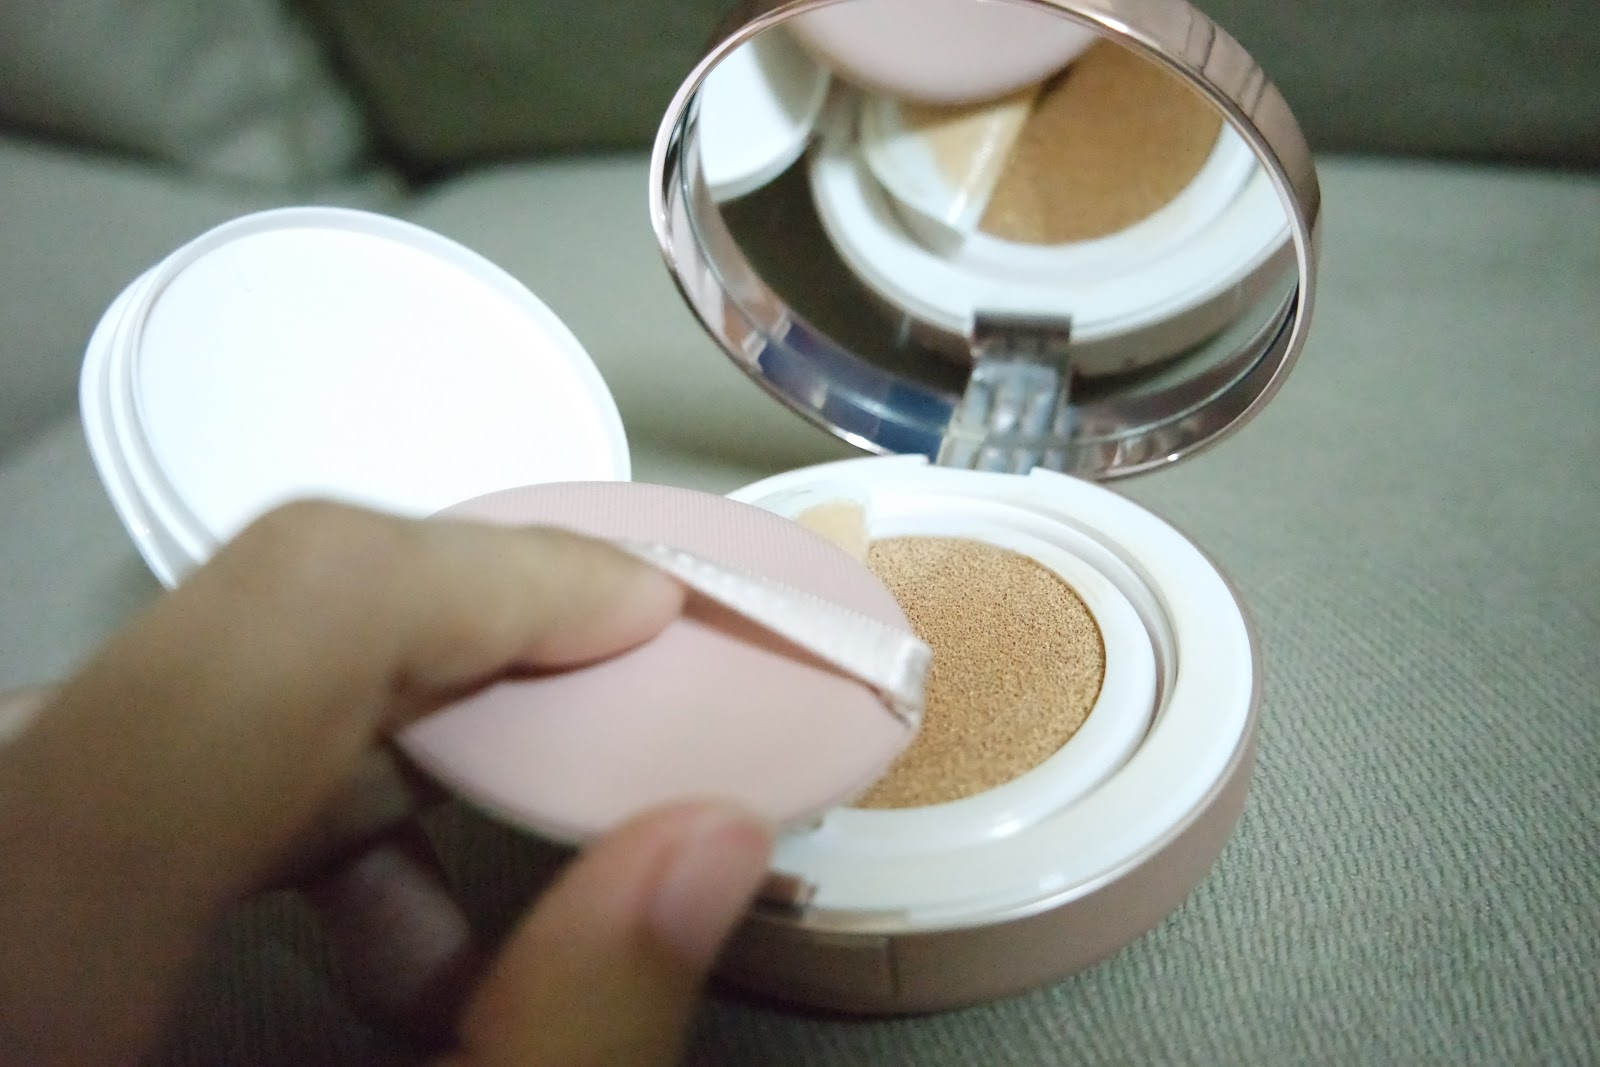 Wardah Instaperfect BB Cushion & City Blush Review. Buy or